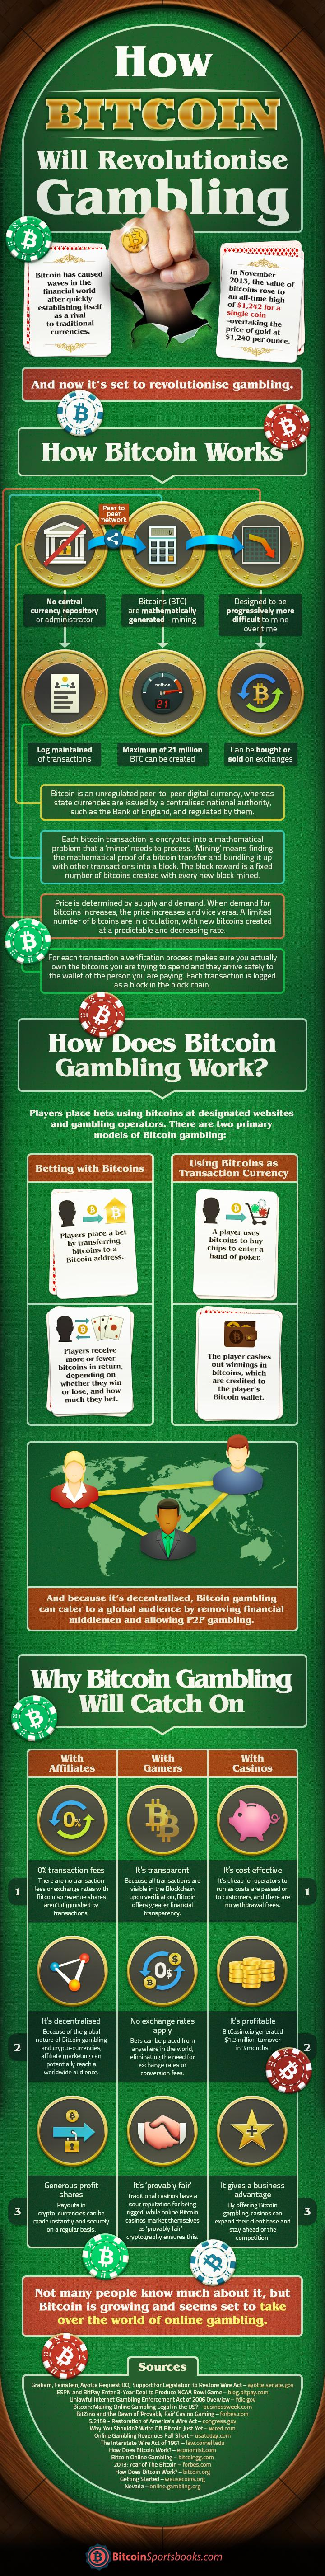 How_Bitcoin_will_Revolutionise_Online_Gambling